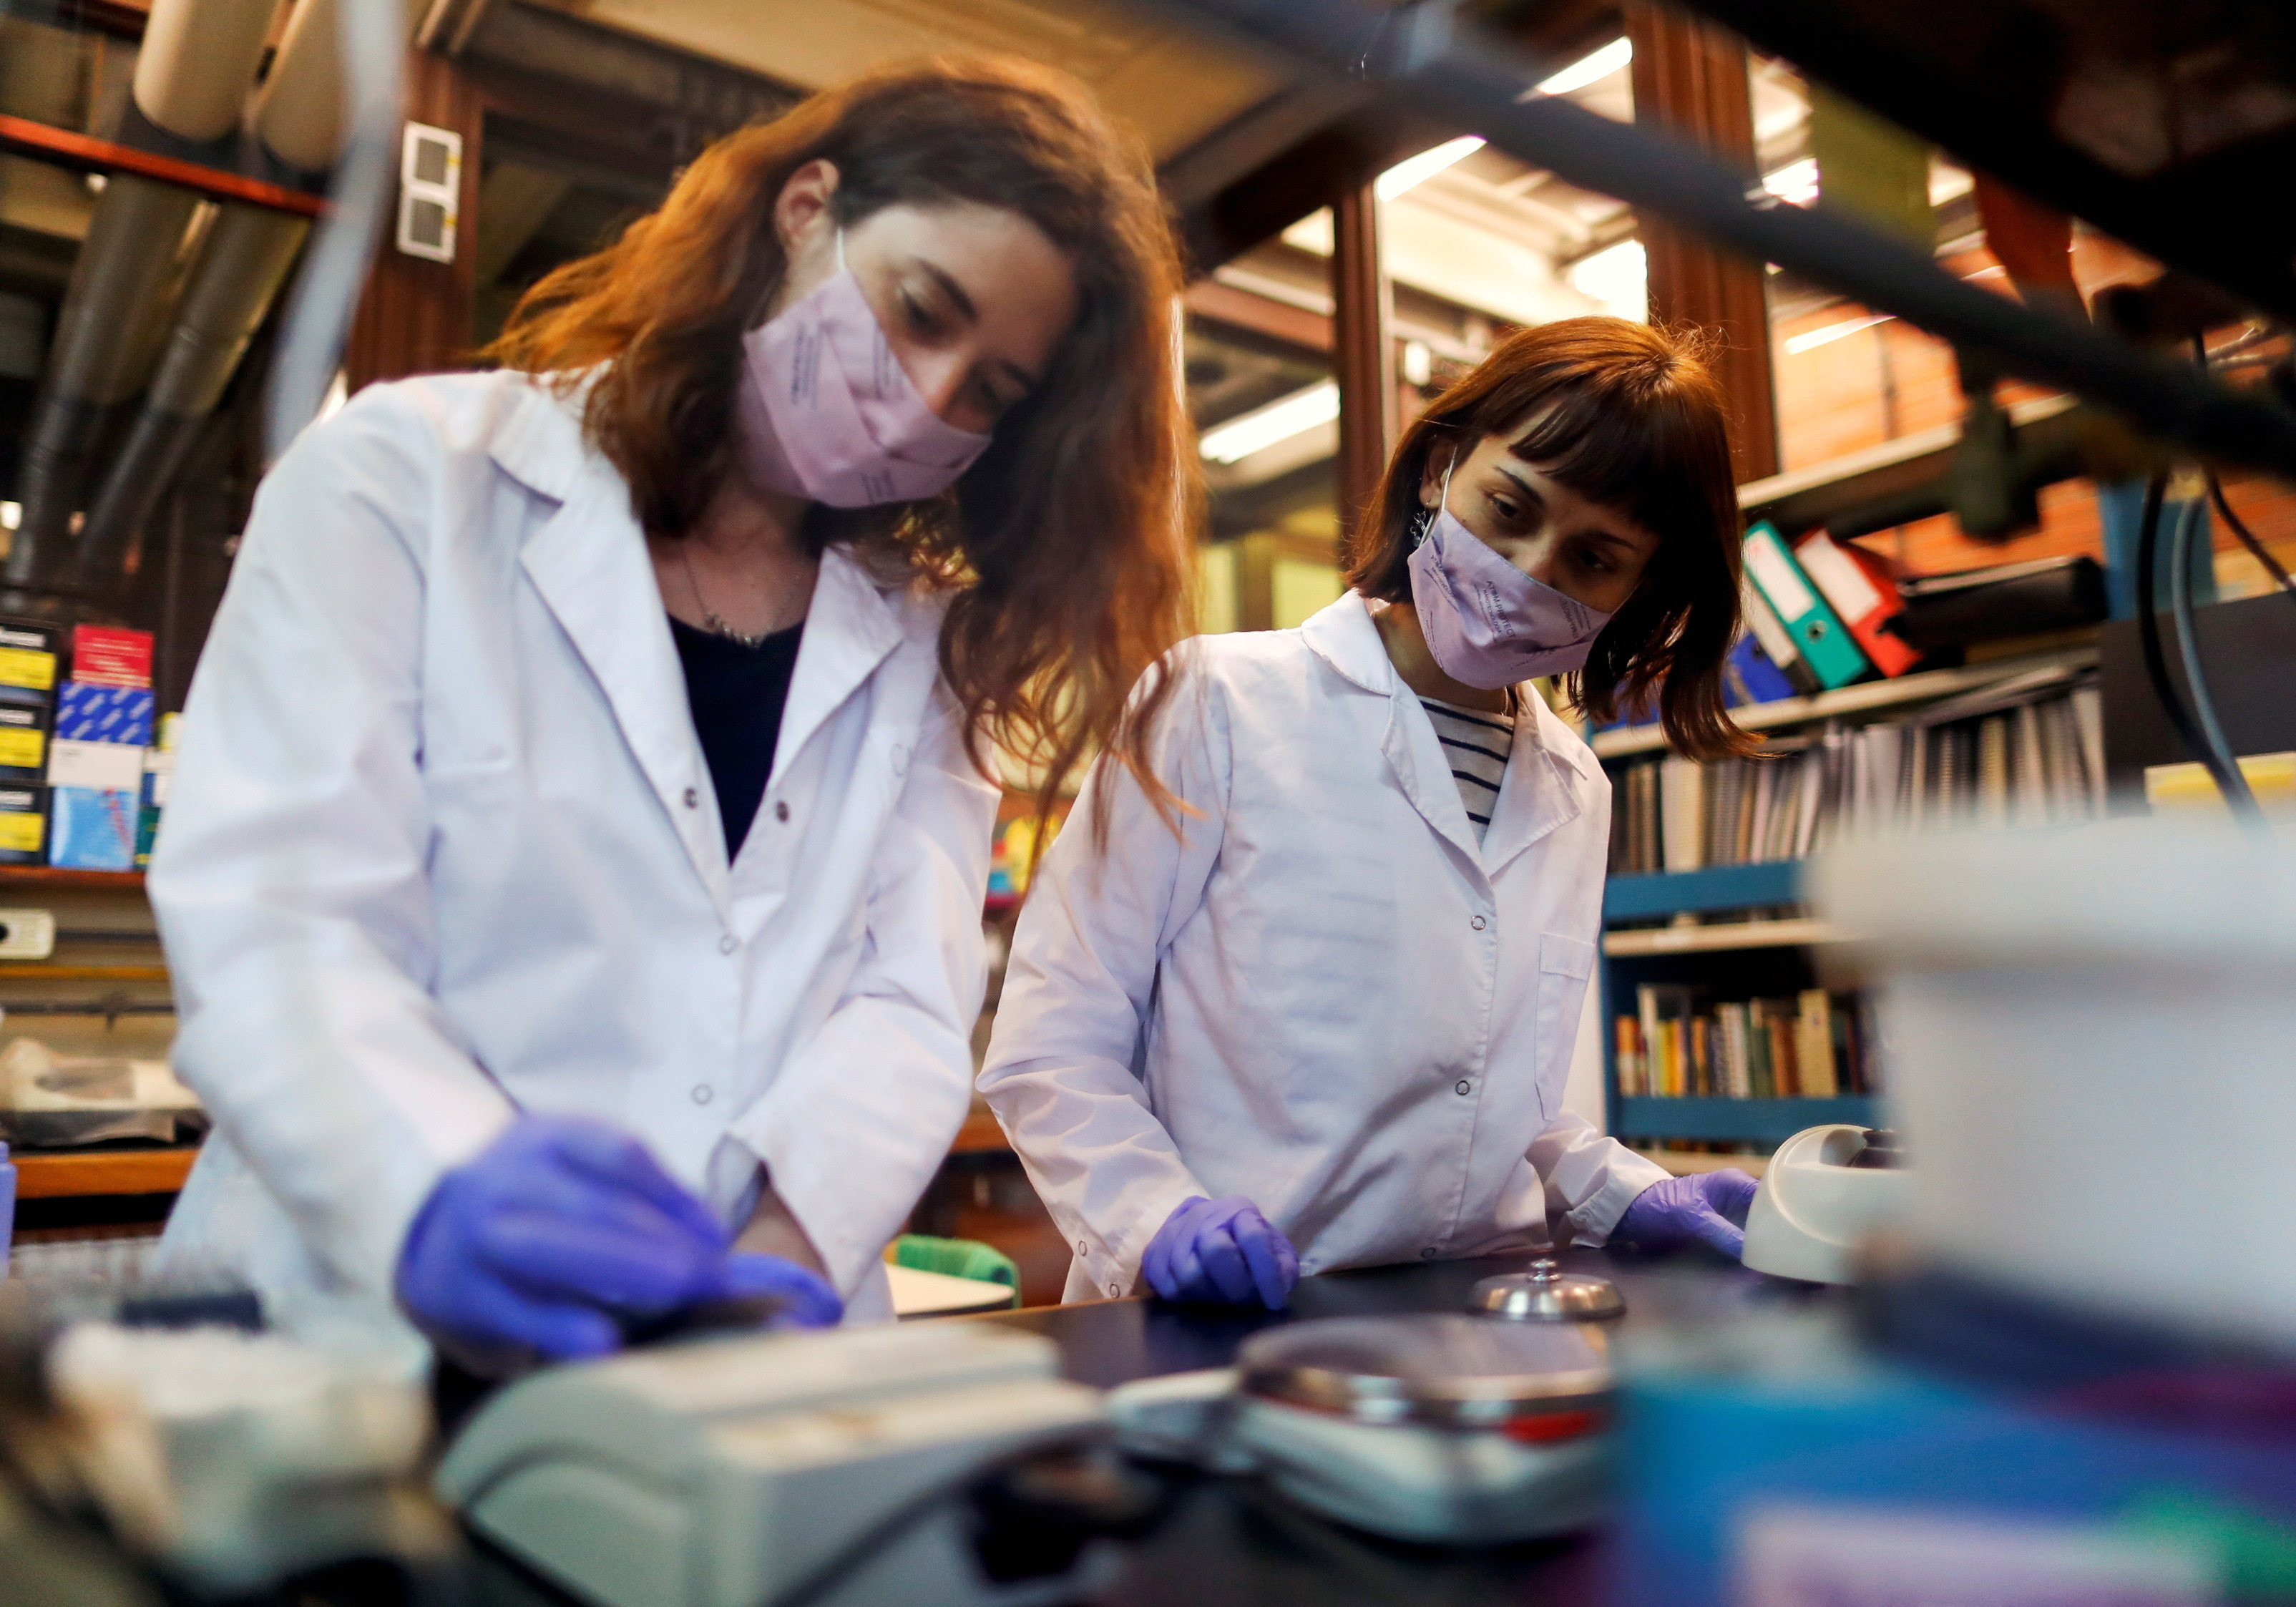 Silvina Sonzogni (R), researcher member of the CONICET (National Scientific and Technical Research Council), works next to student Eliana Rozowykwiat, at the laboratory of Neurogenetics of the University Buenos Aires, in Buenos Aires, Argentina May 13, 2021. REUTERS/Agustin Marcarian - RC25FN9ZSL50